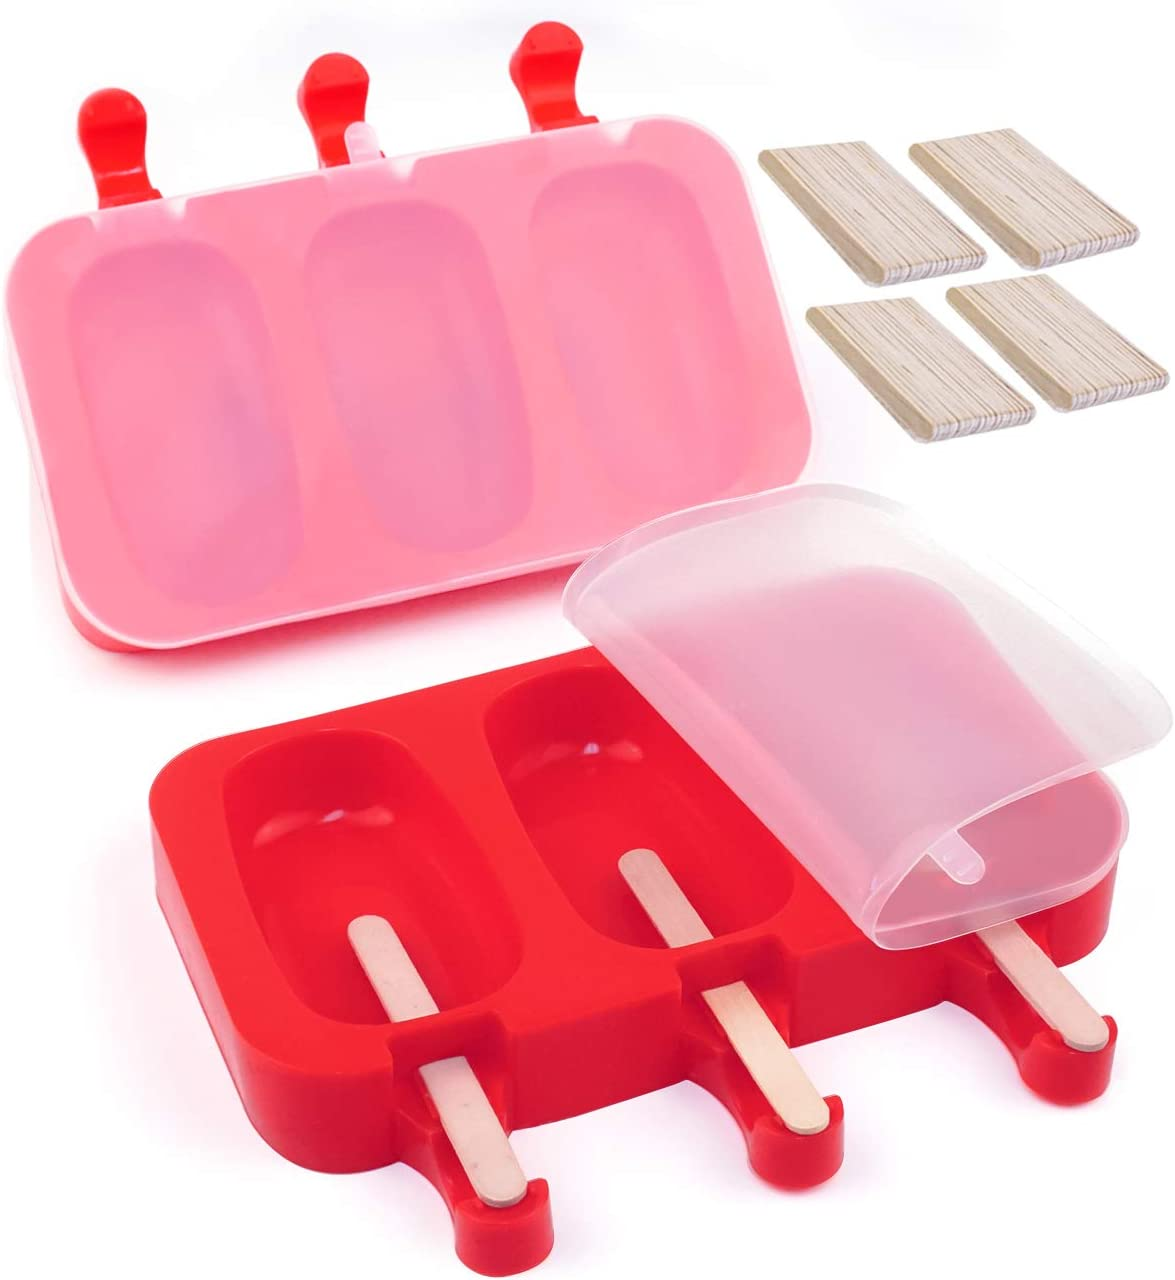 LERTREE 12-Cavity Frozen Ice Cream Pop Mold Silicone Popsicle Maker Lolly Mould with 100 Sticks for Kids Kitchen Cake Tools